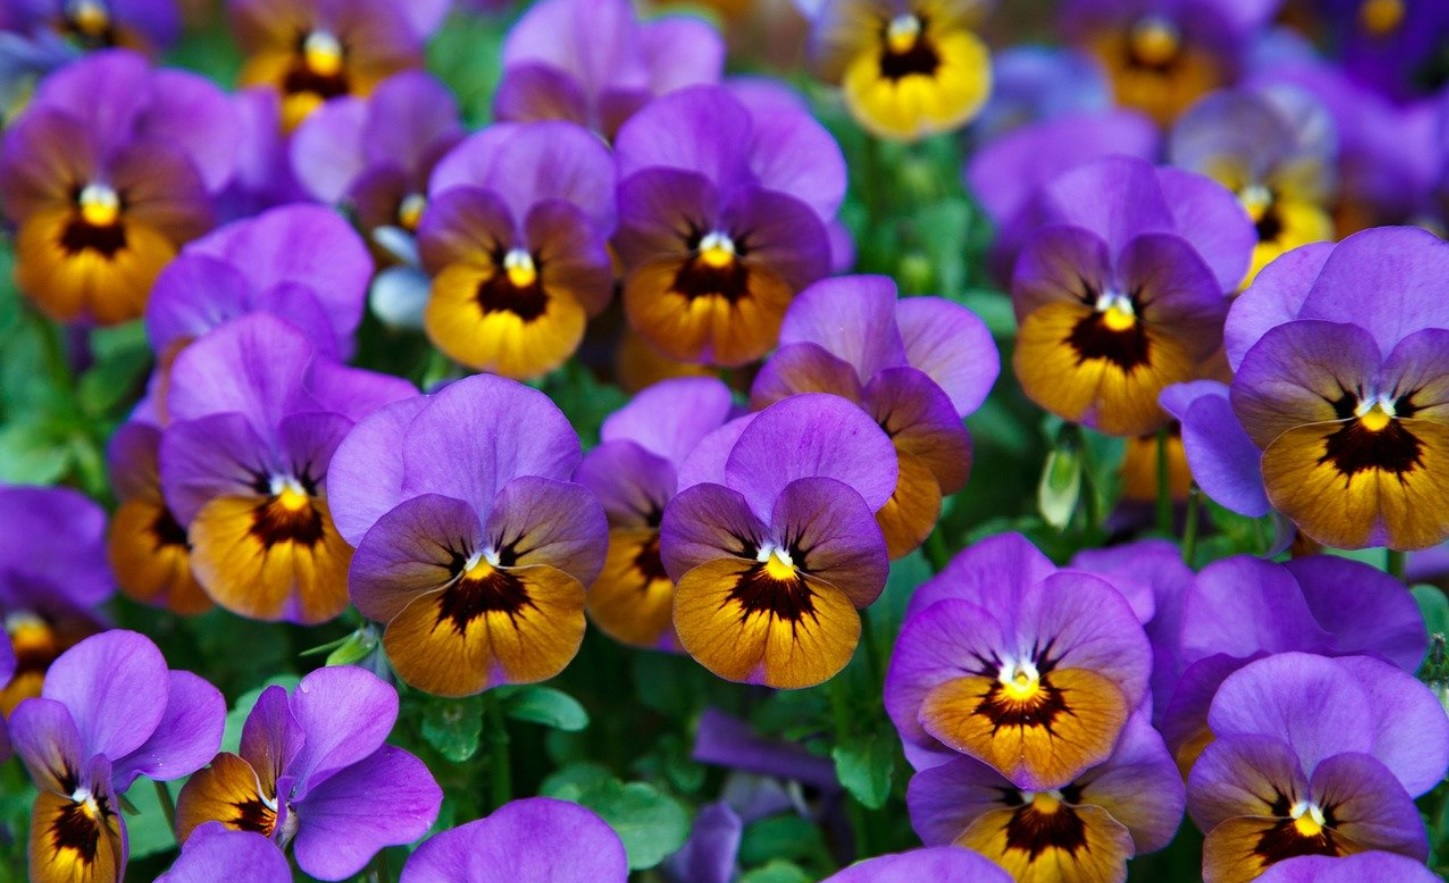 10 Best Winter Flowering Plants in India: Details and Care